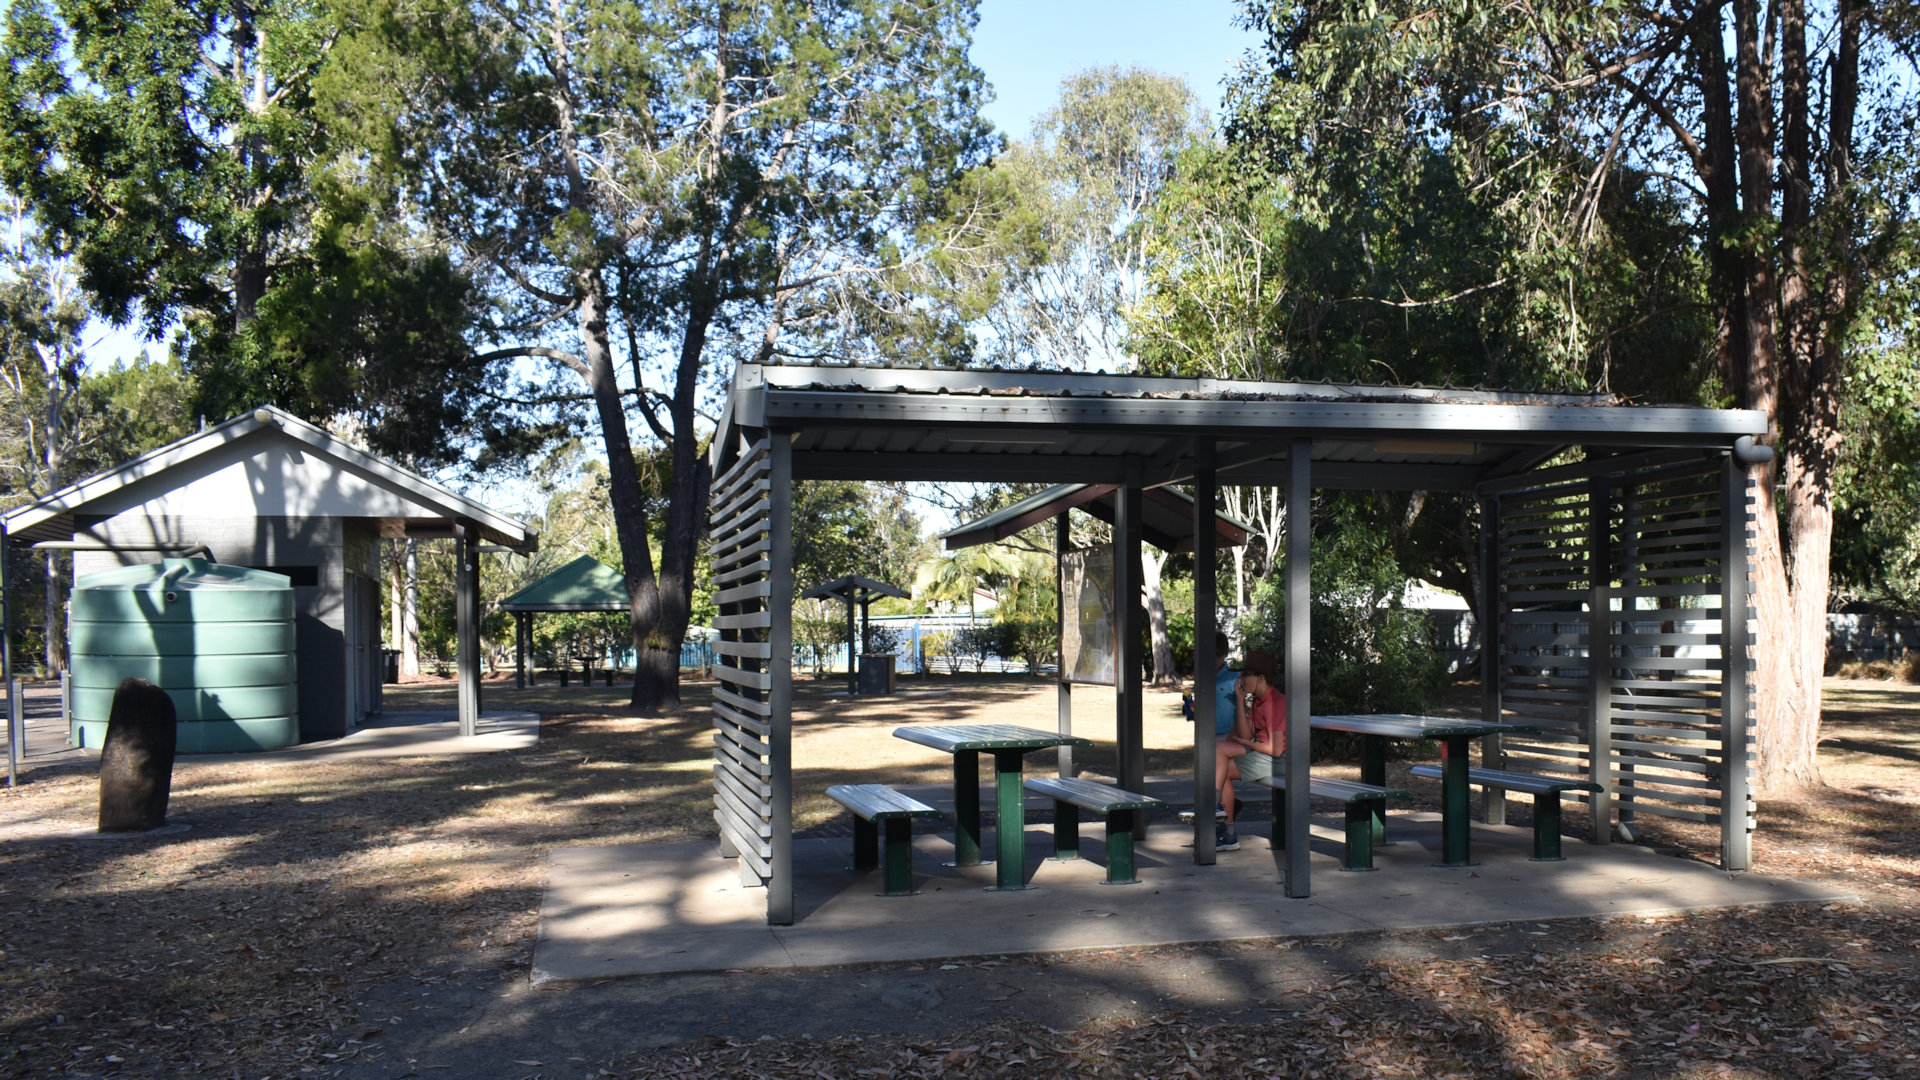 Rest stop park area, at Sharon Gorge Nature Park between Bundaberg and Gin Gin